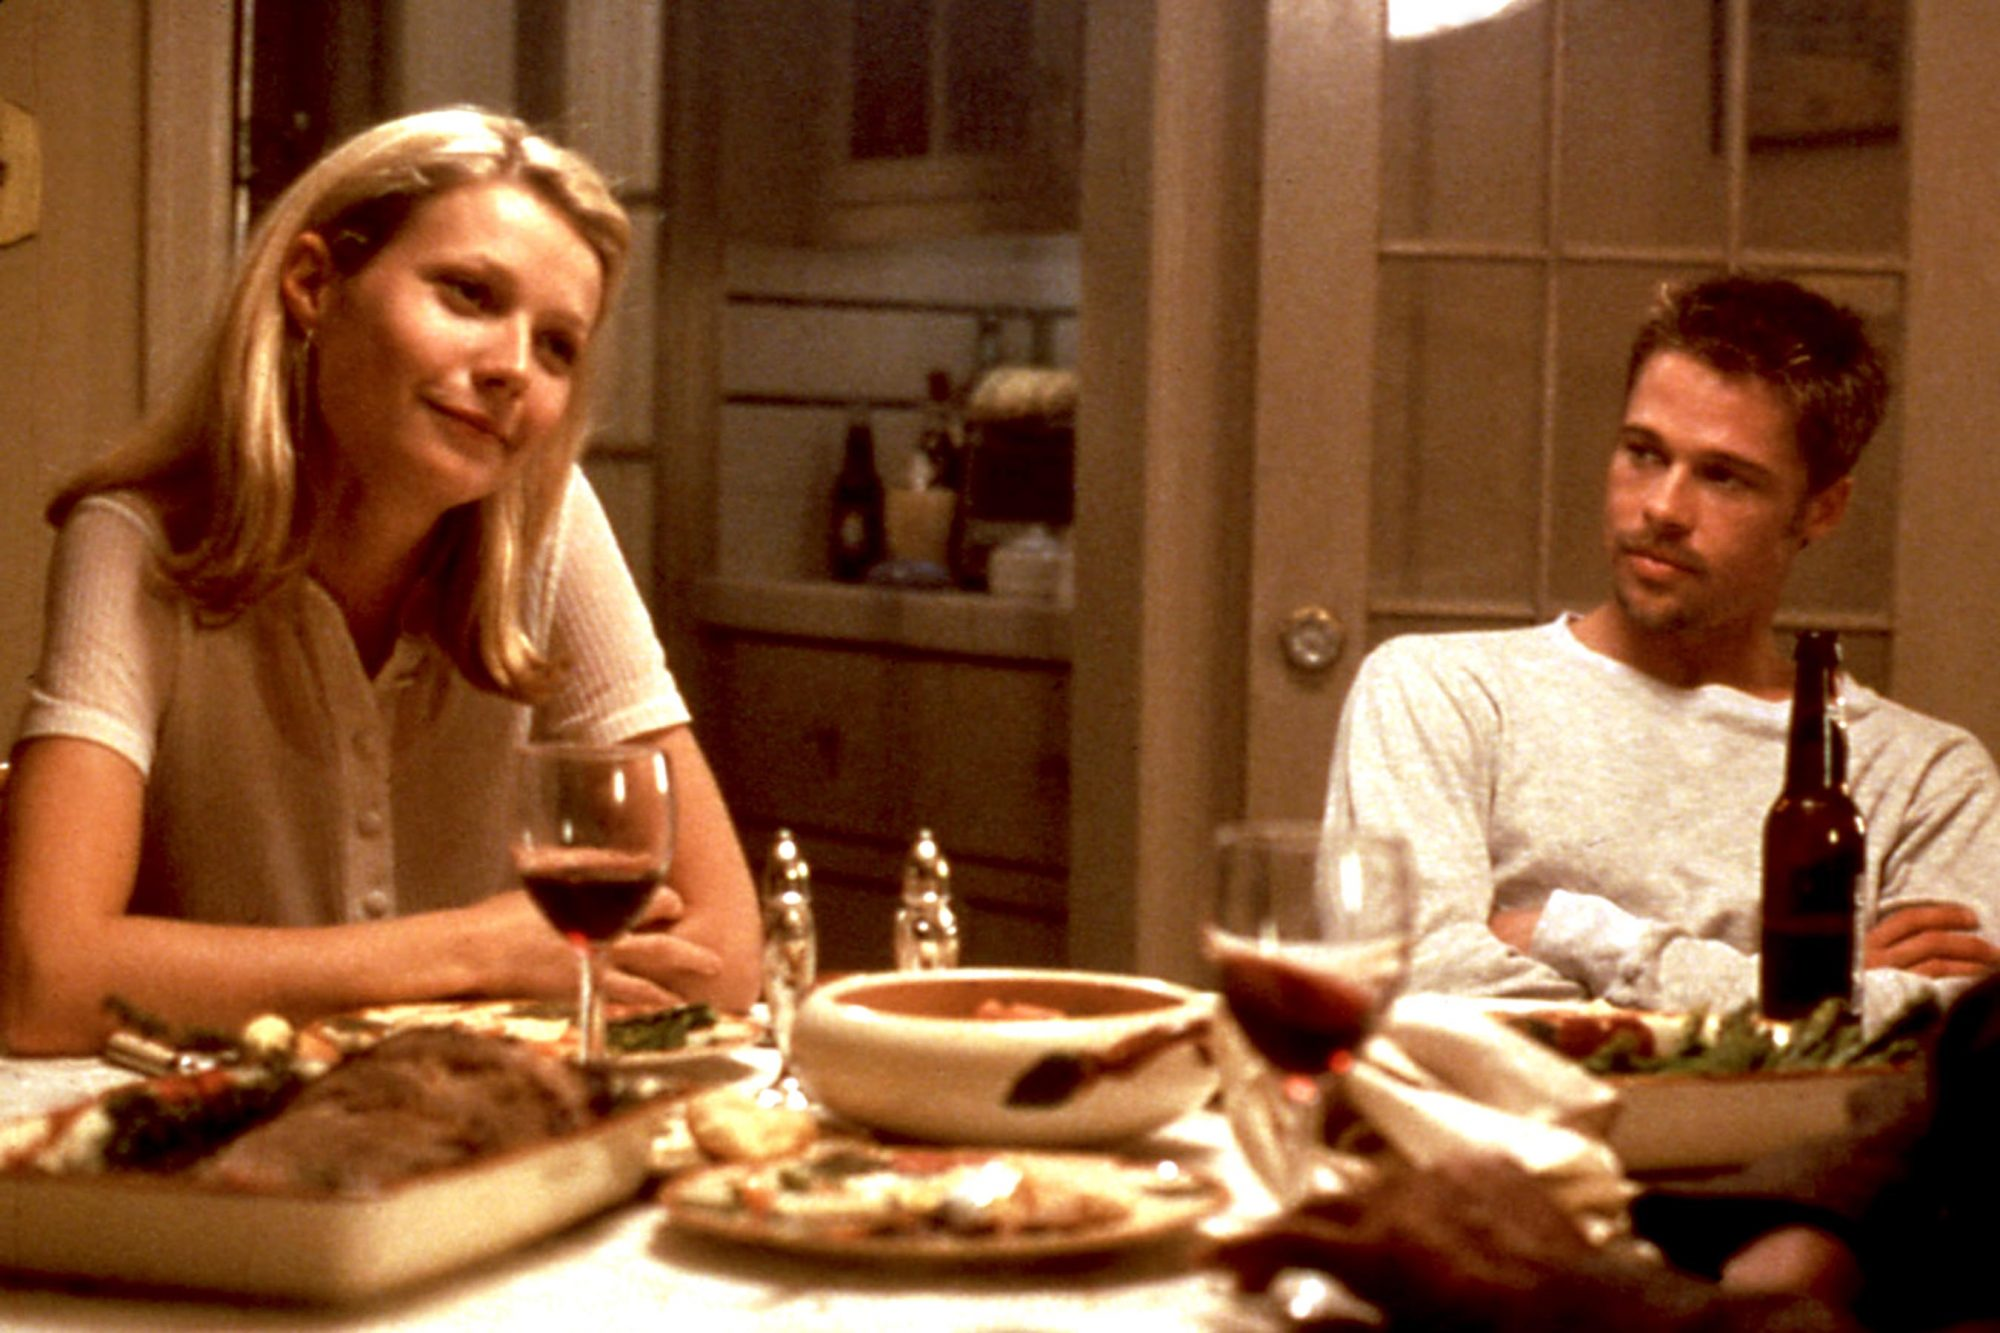 SEVEN, Gwyneth Paltrow, Brad Pitt, Morgan Freeman, 1995